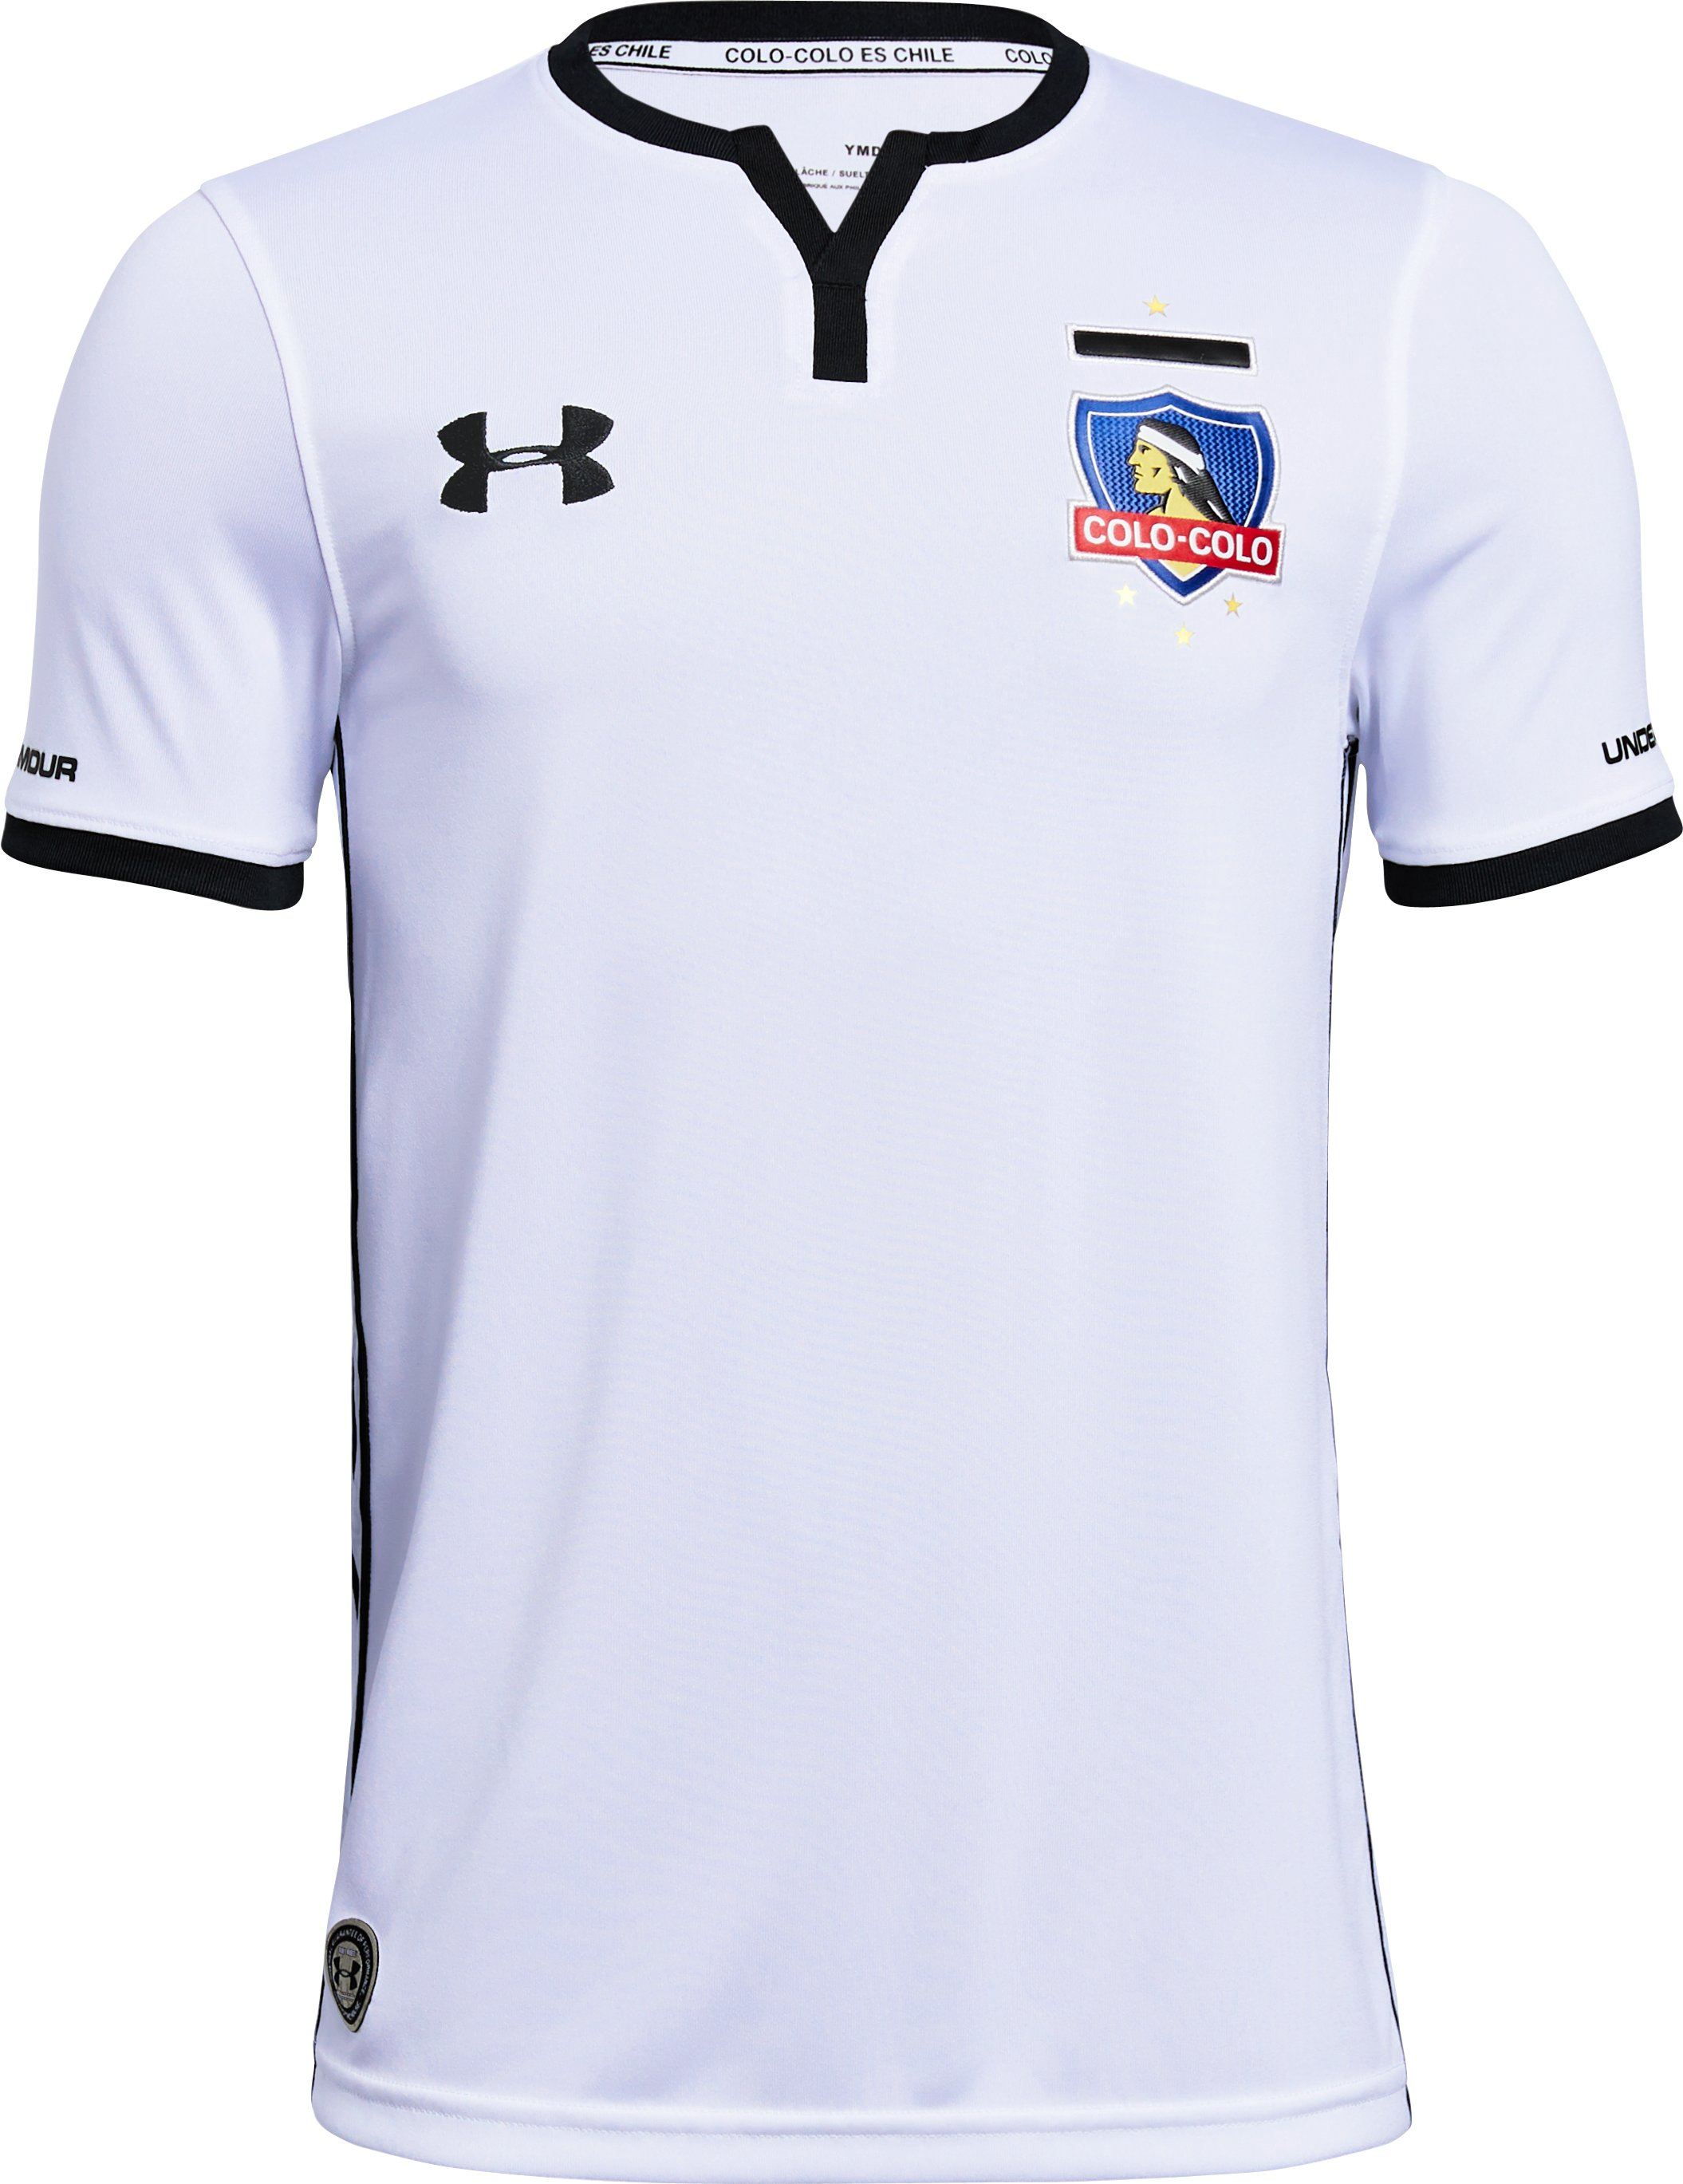 Youth Colo-Colo Replica Home Jersey, White, zoomed